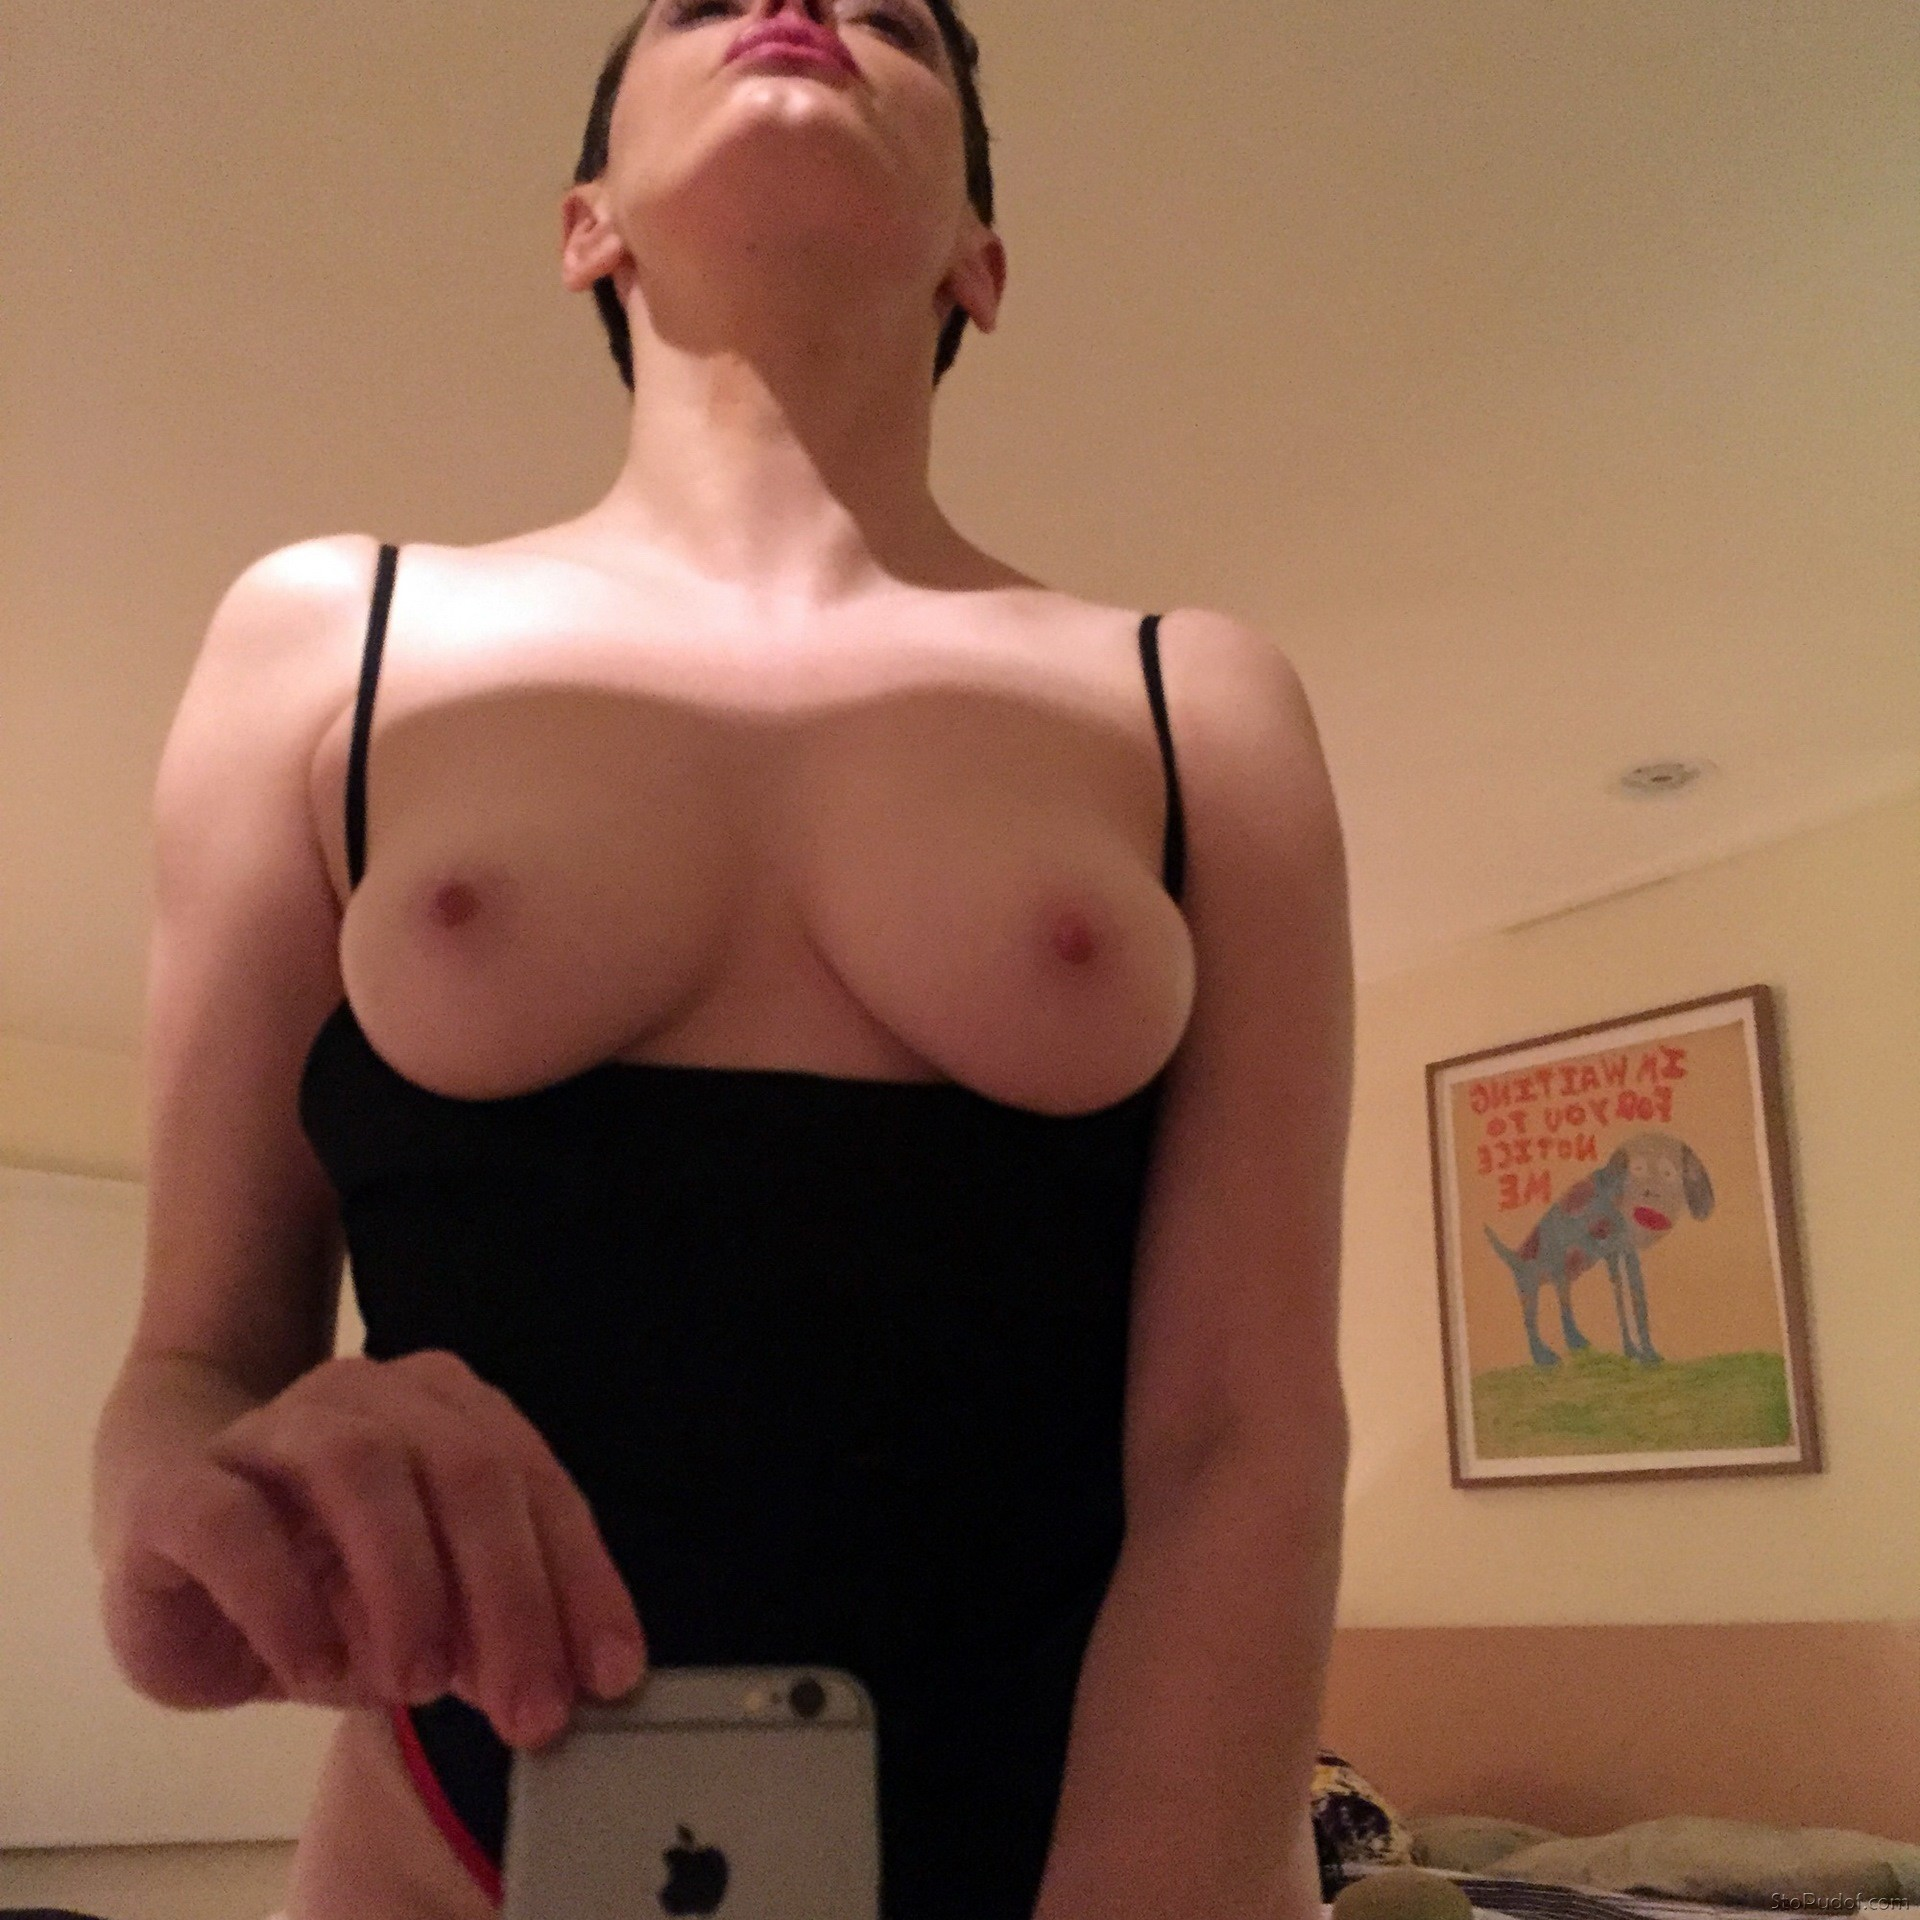 Rose McGowan caught naked - UkPhotoSafari